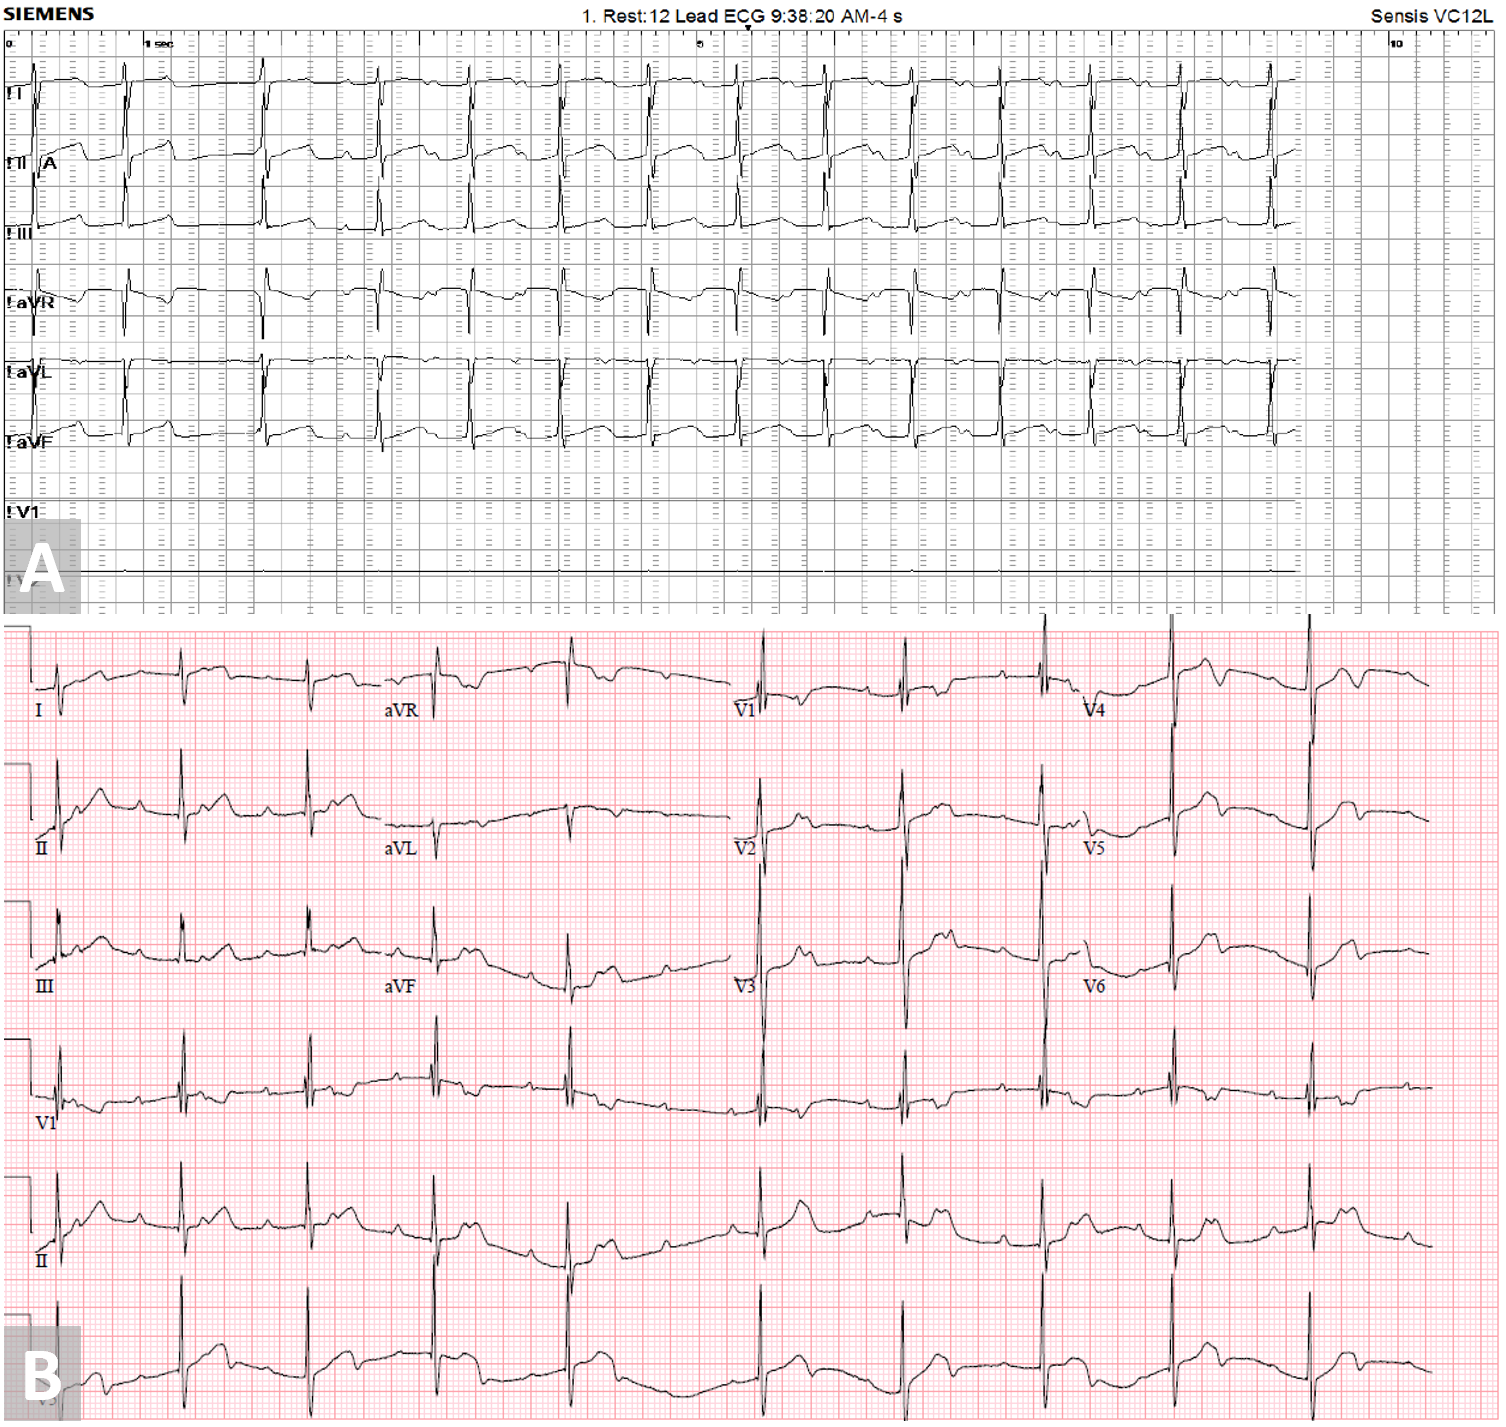 Early Progressive Atrioventricular Block After Amplatzer Septal Occluder Closure of a Large Atrial Septal Defect